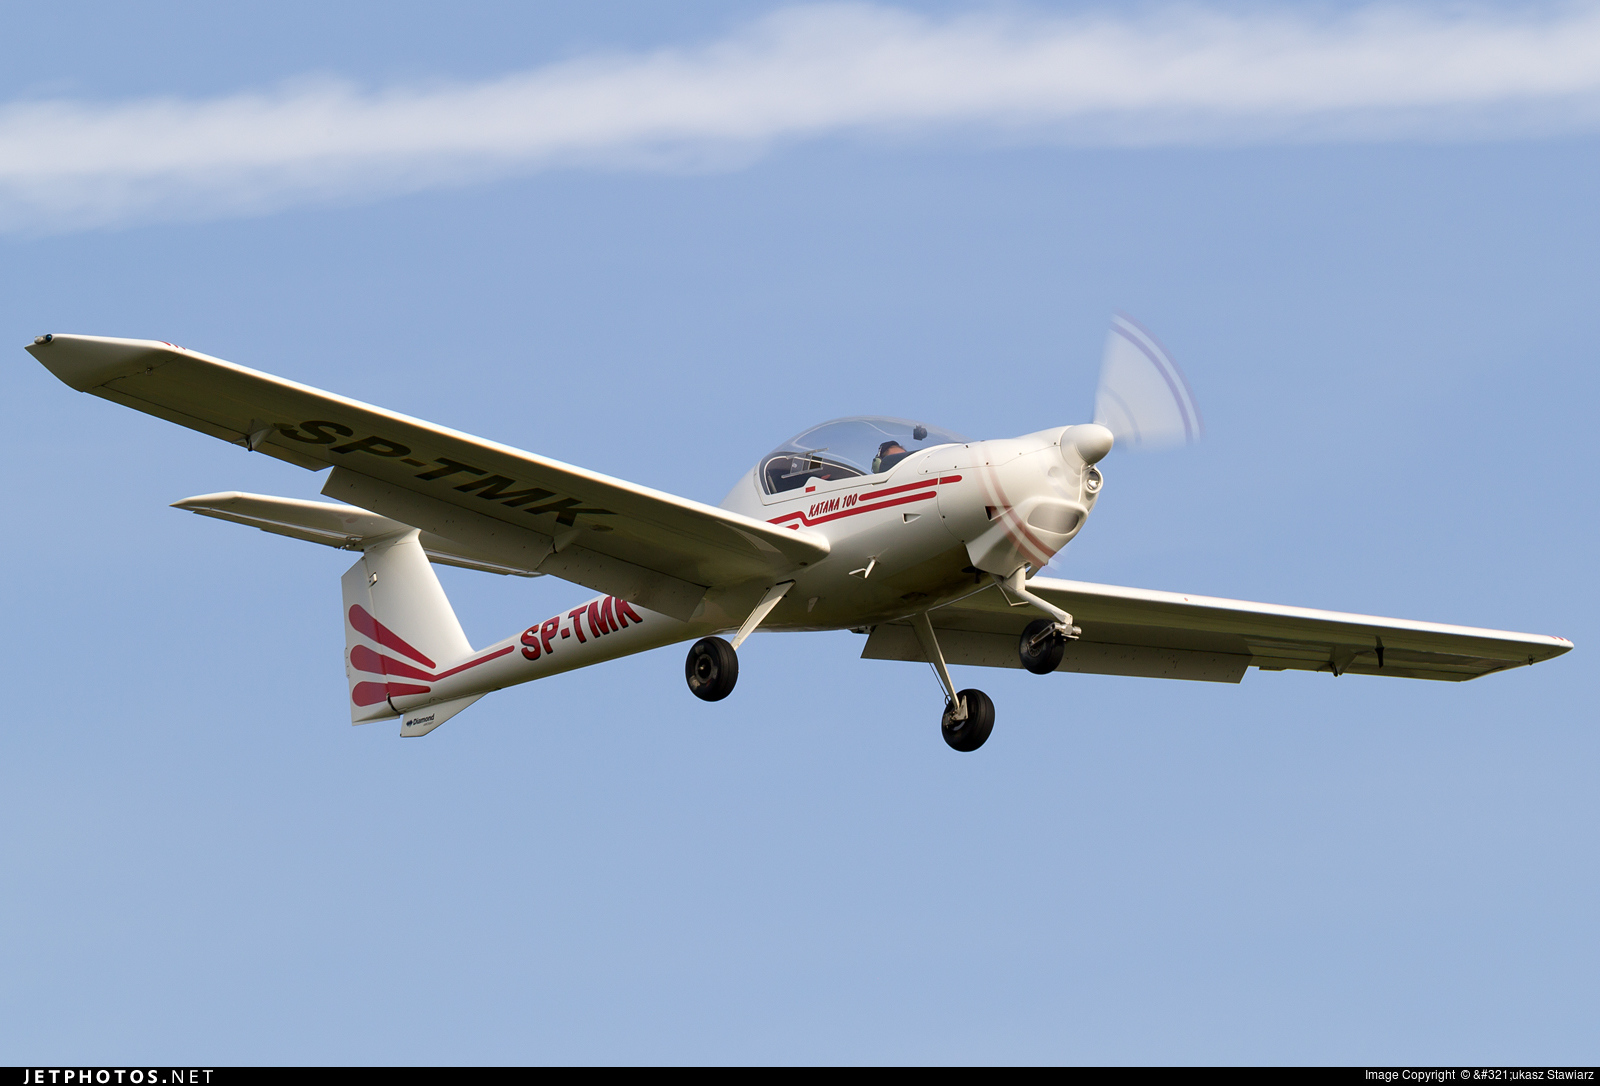 the pilot aircraft is century diamond new for eclipse aviation acclaimed trainer alpine da highly